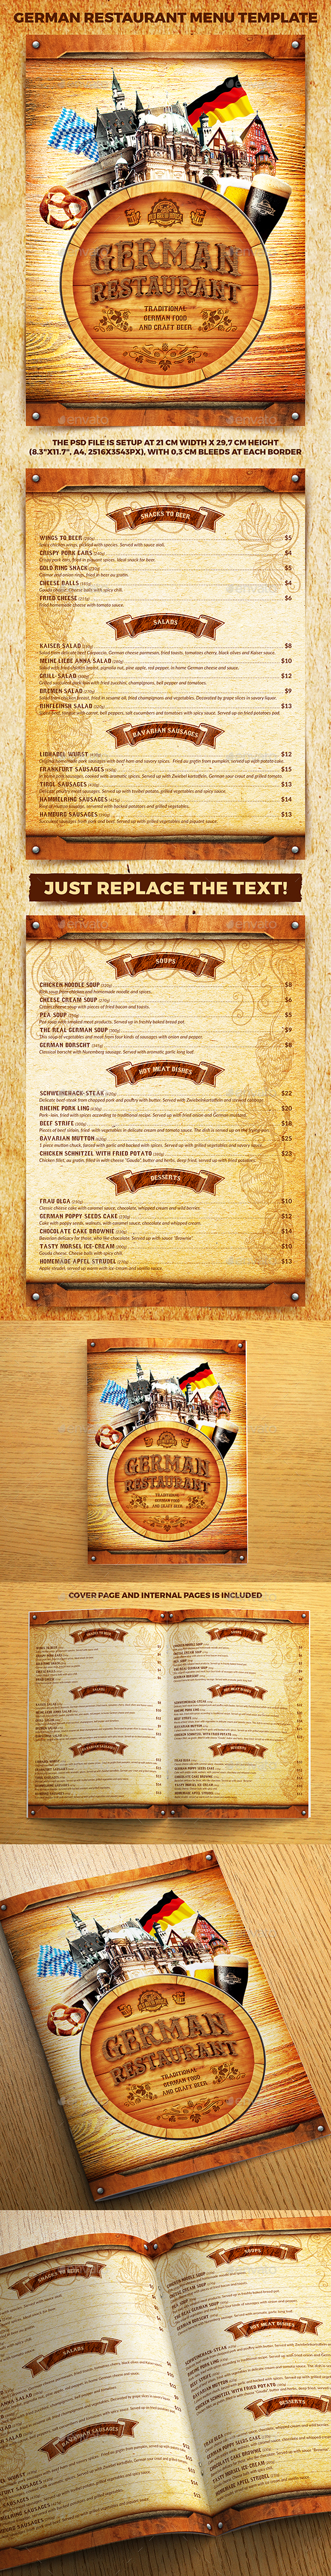 German Restaurant Menu Template - Food Menus Print Templates